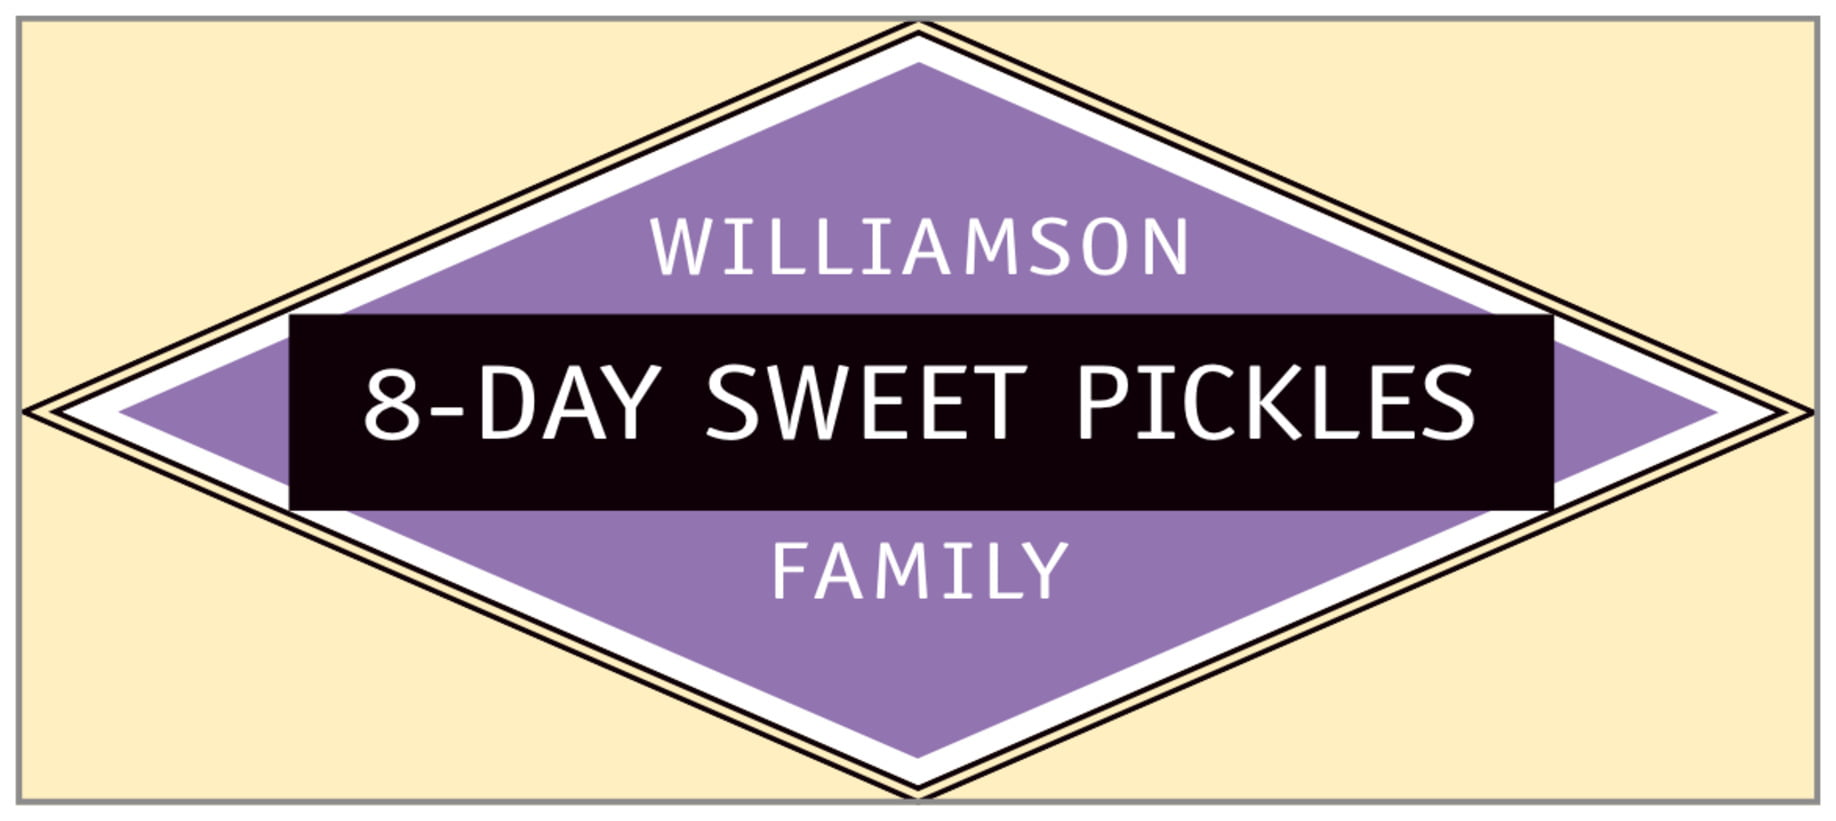 small rectangle food/craft labels - purple - bentley (set of 24)